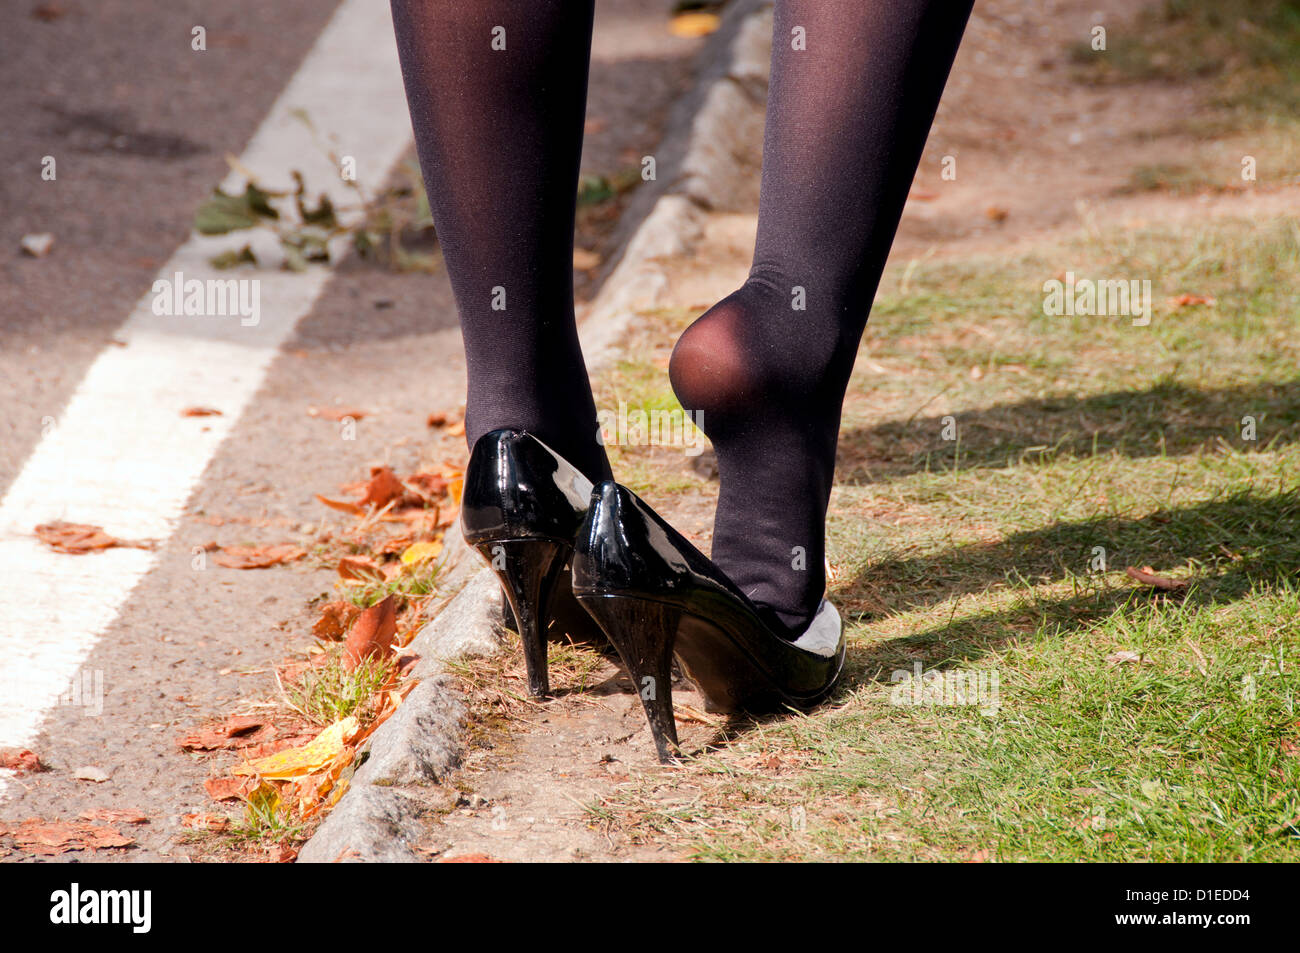 A woman stretching her legs and feet whilst wearing shiny black shoes and stockings - Stock Image